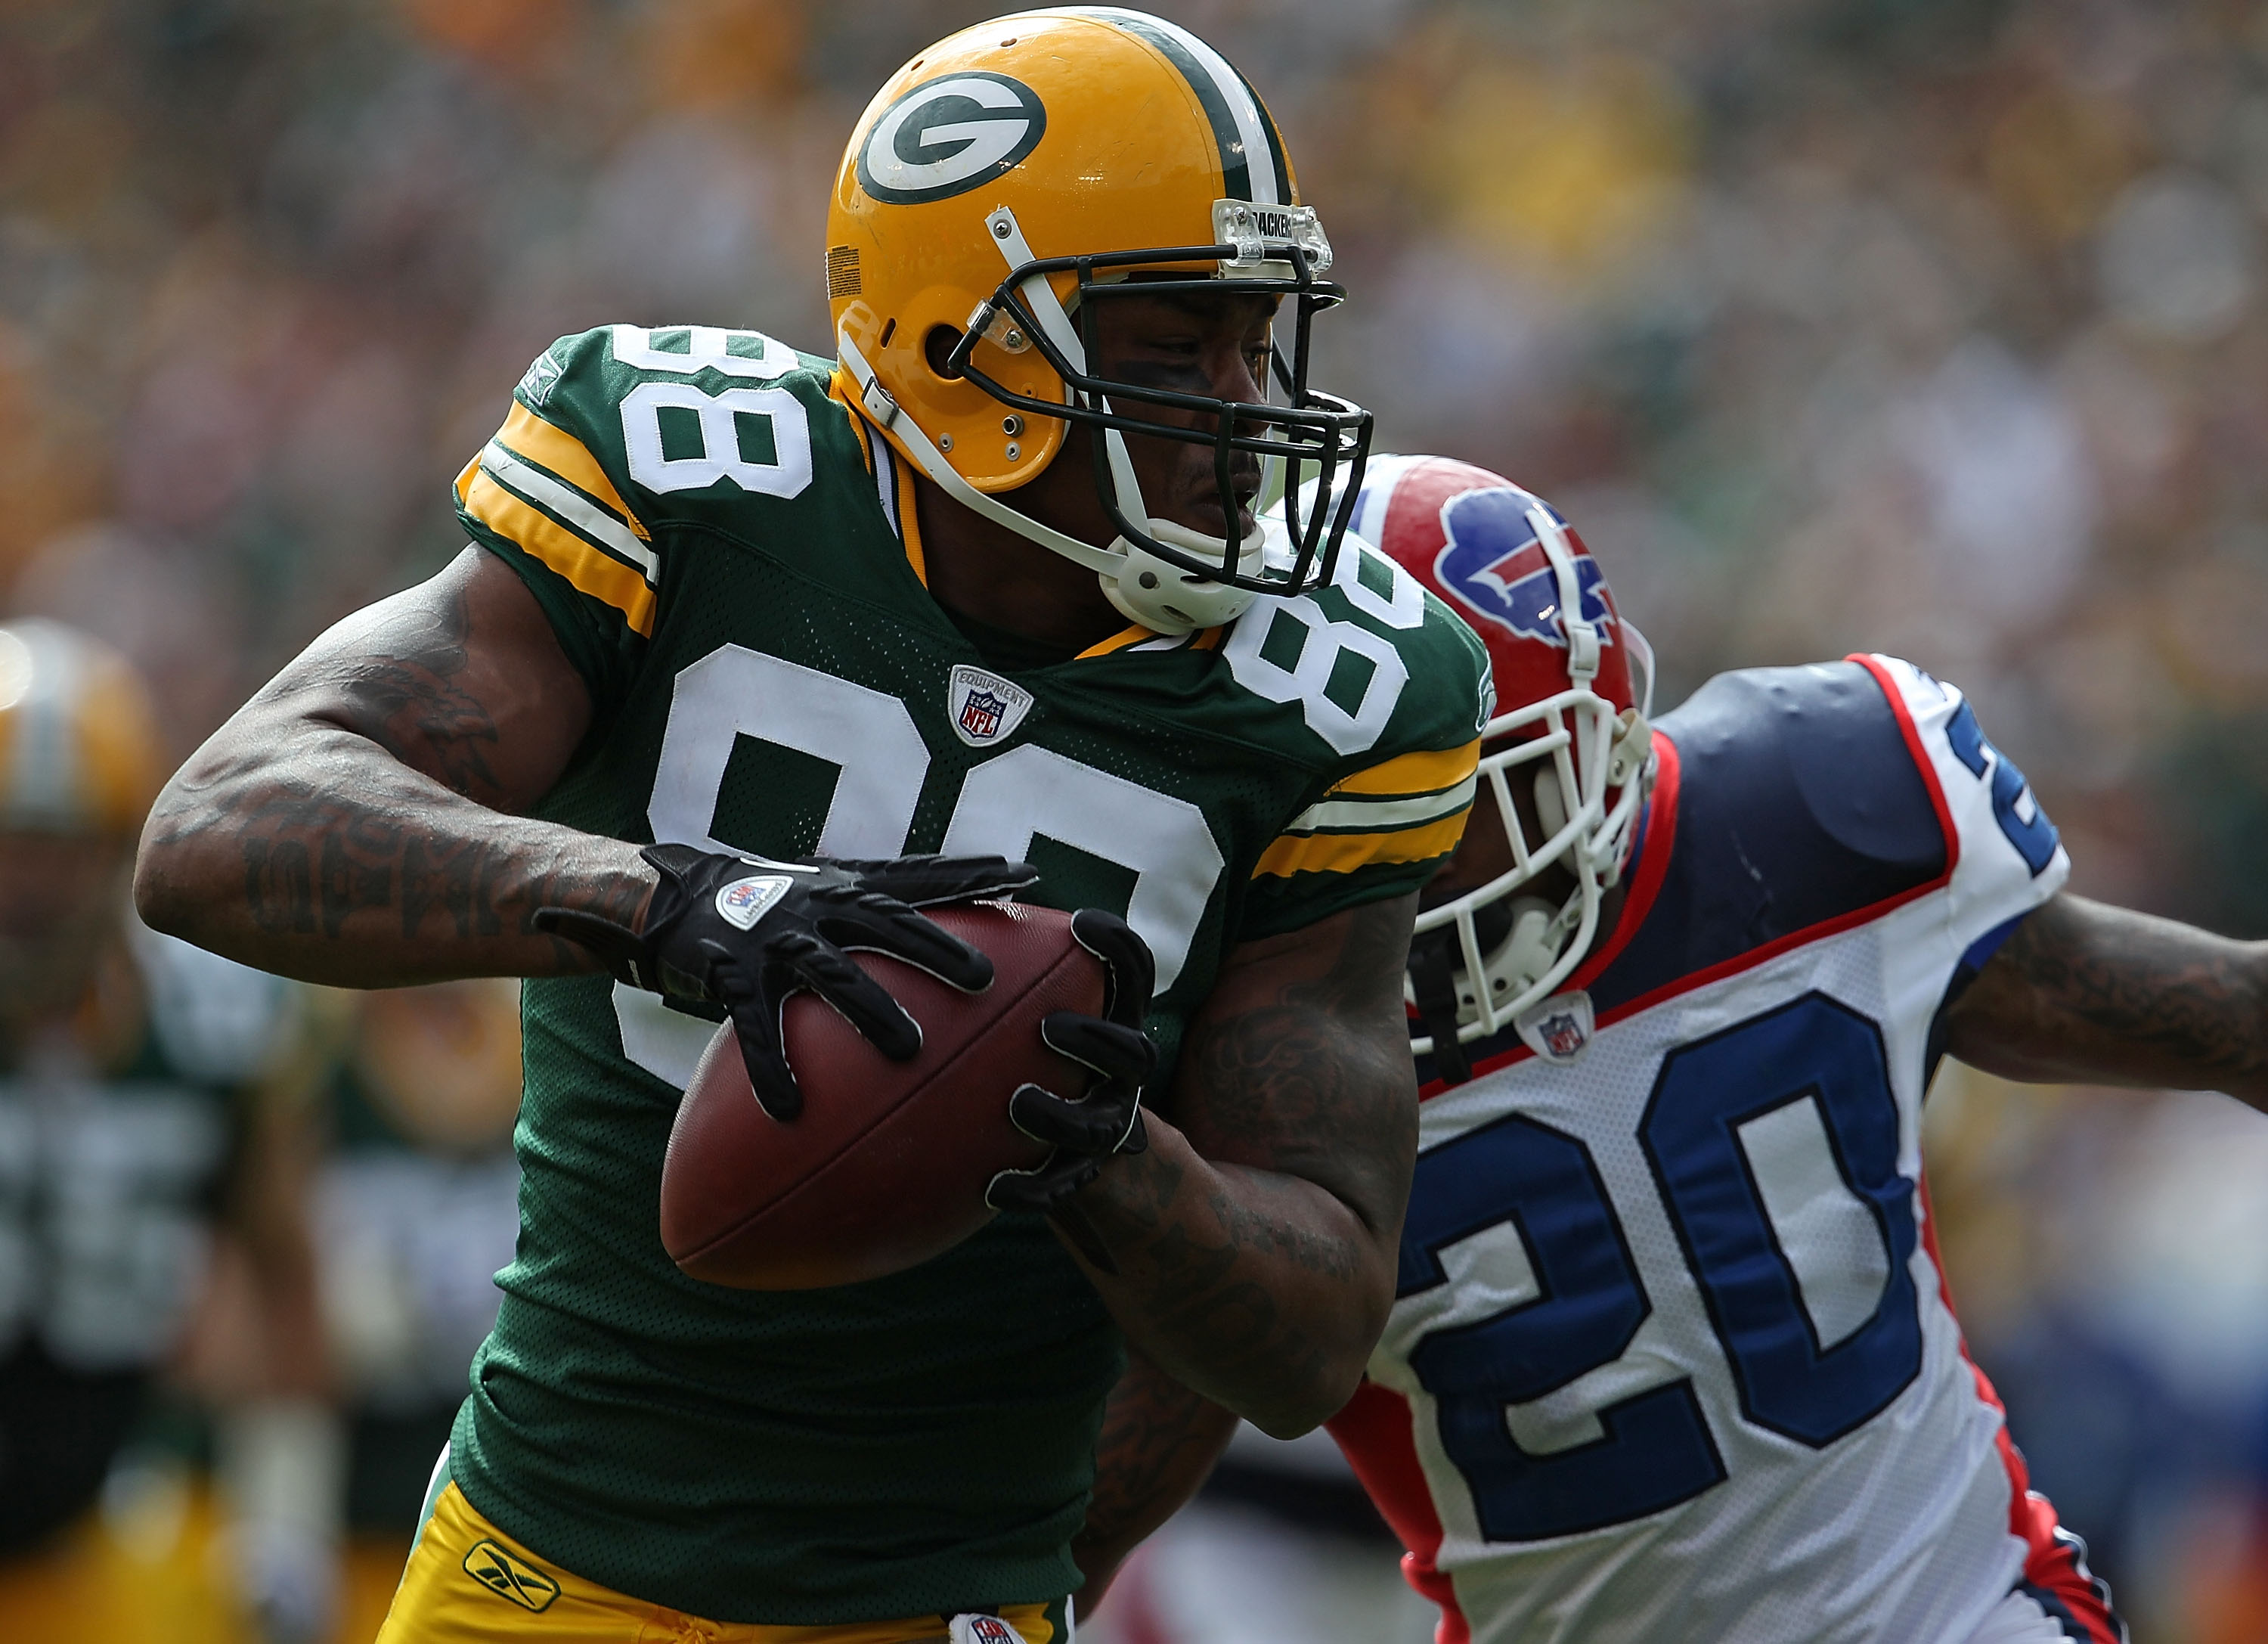 GREEN BAY, WI - SEPTEMBER 19: Jermichael Finley #88 of the Green Bay Packers grabs a pass in front of Donte Whitner #20 of the Buffalo Bills at Lambeau Field on September 19, 2010 in Green Bay, Wisconsin. The Packers defeated the Bills 34-7. (Photo by Jon